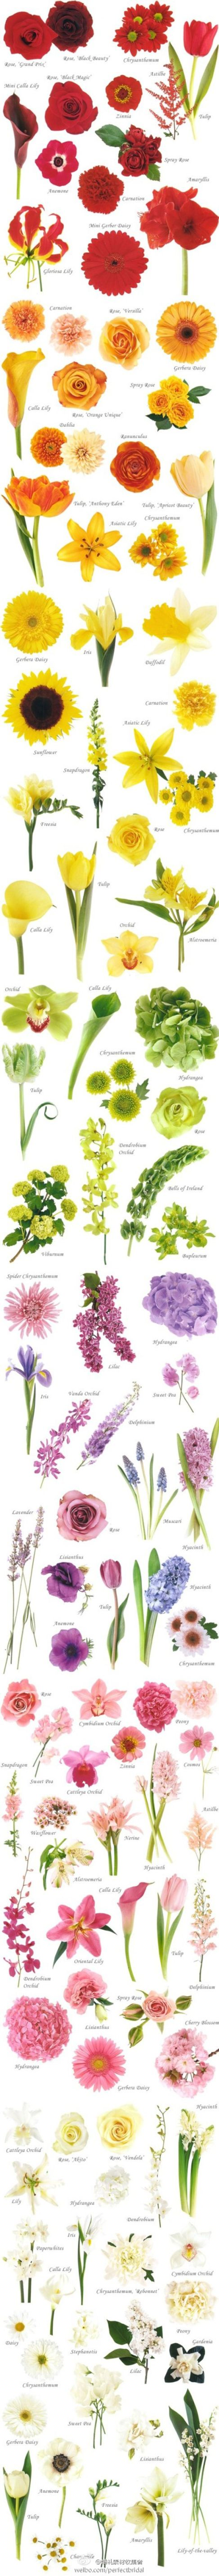 This is tediously long, but also tremendously useful— common flowers arranged by color & name.